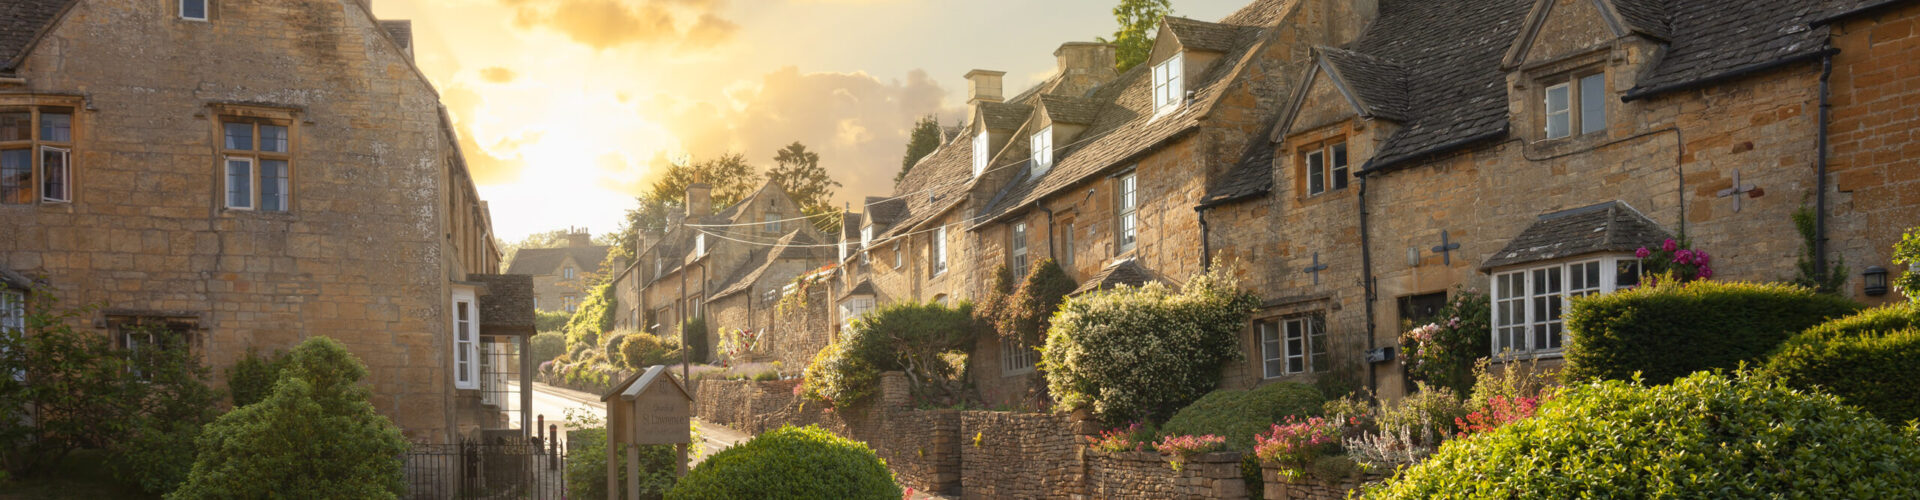 Bourton-on-the-Hill village near Moreton-in-Marsh, Cotswolds, Gloucestershire, England.